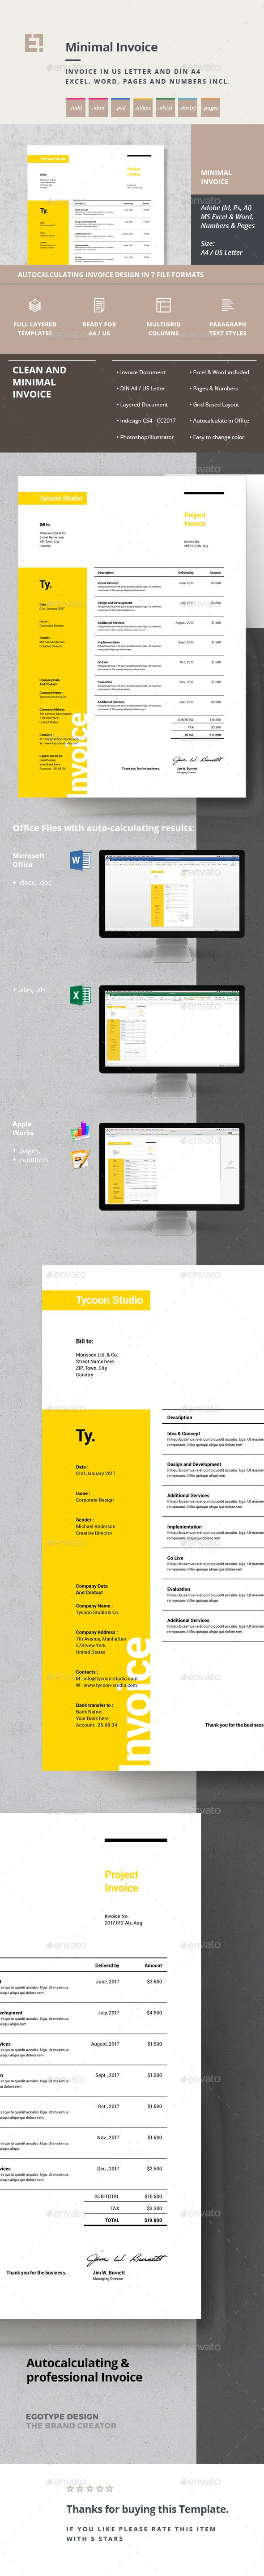 Minimal and Professional Invoice Template PSD, AI, EPS, XLSX, XLS, DOCX & DOC